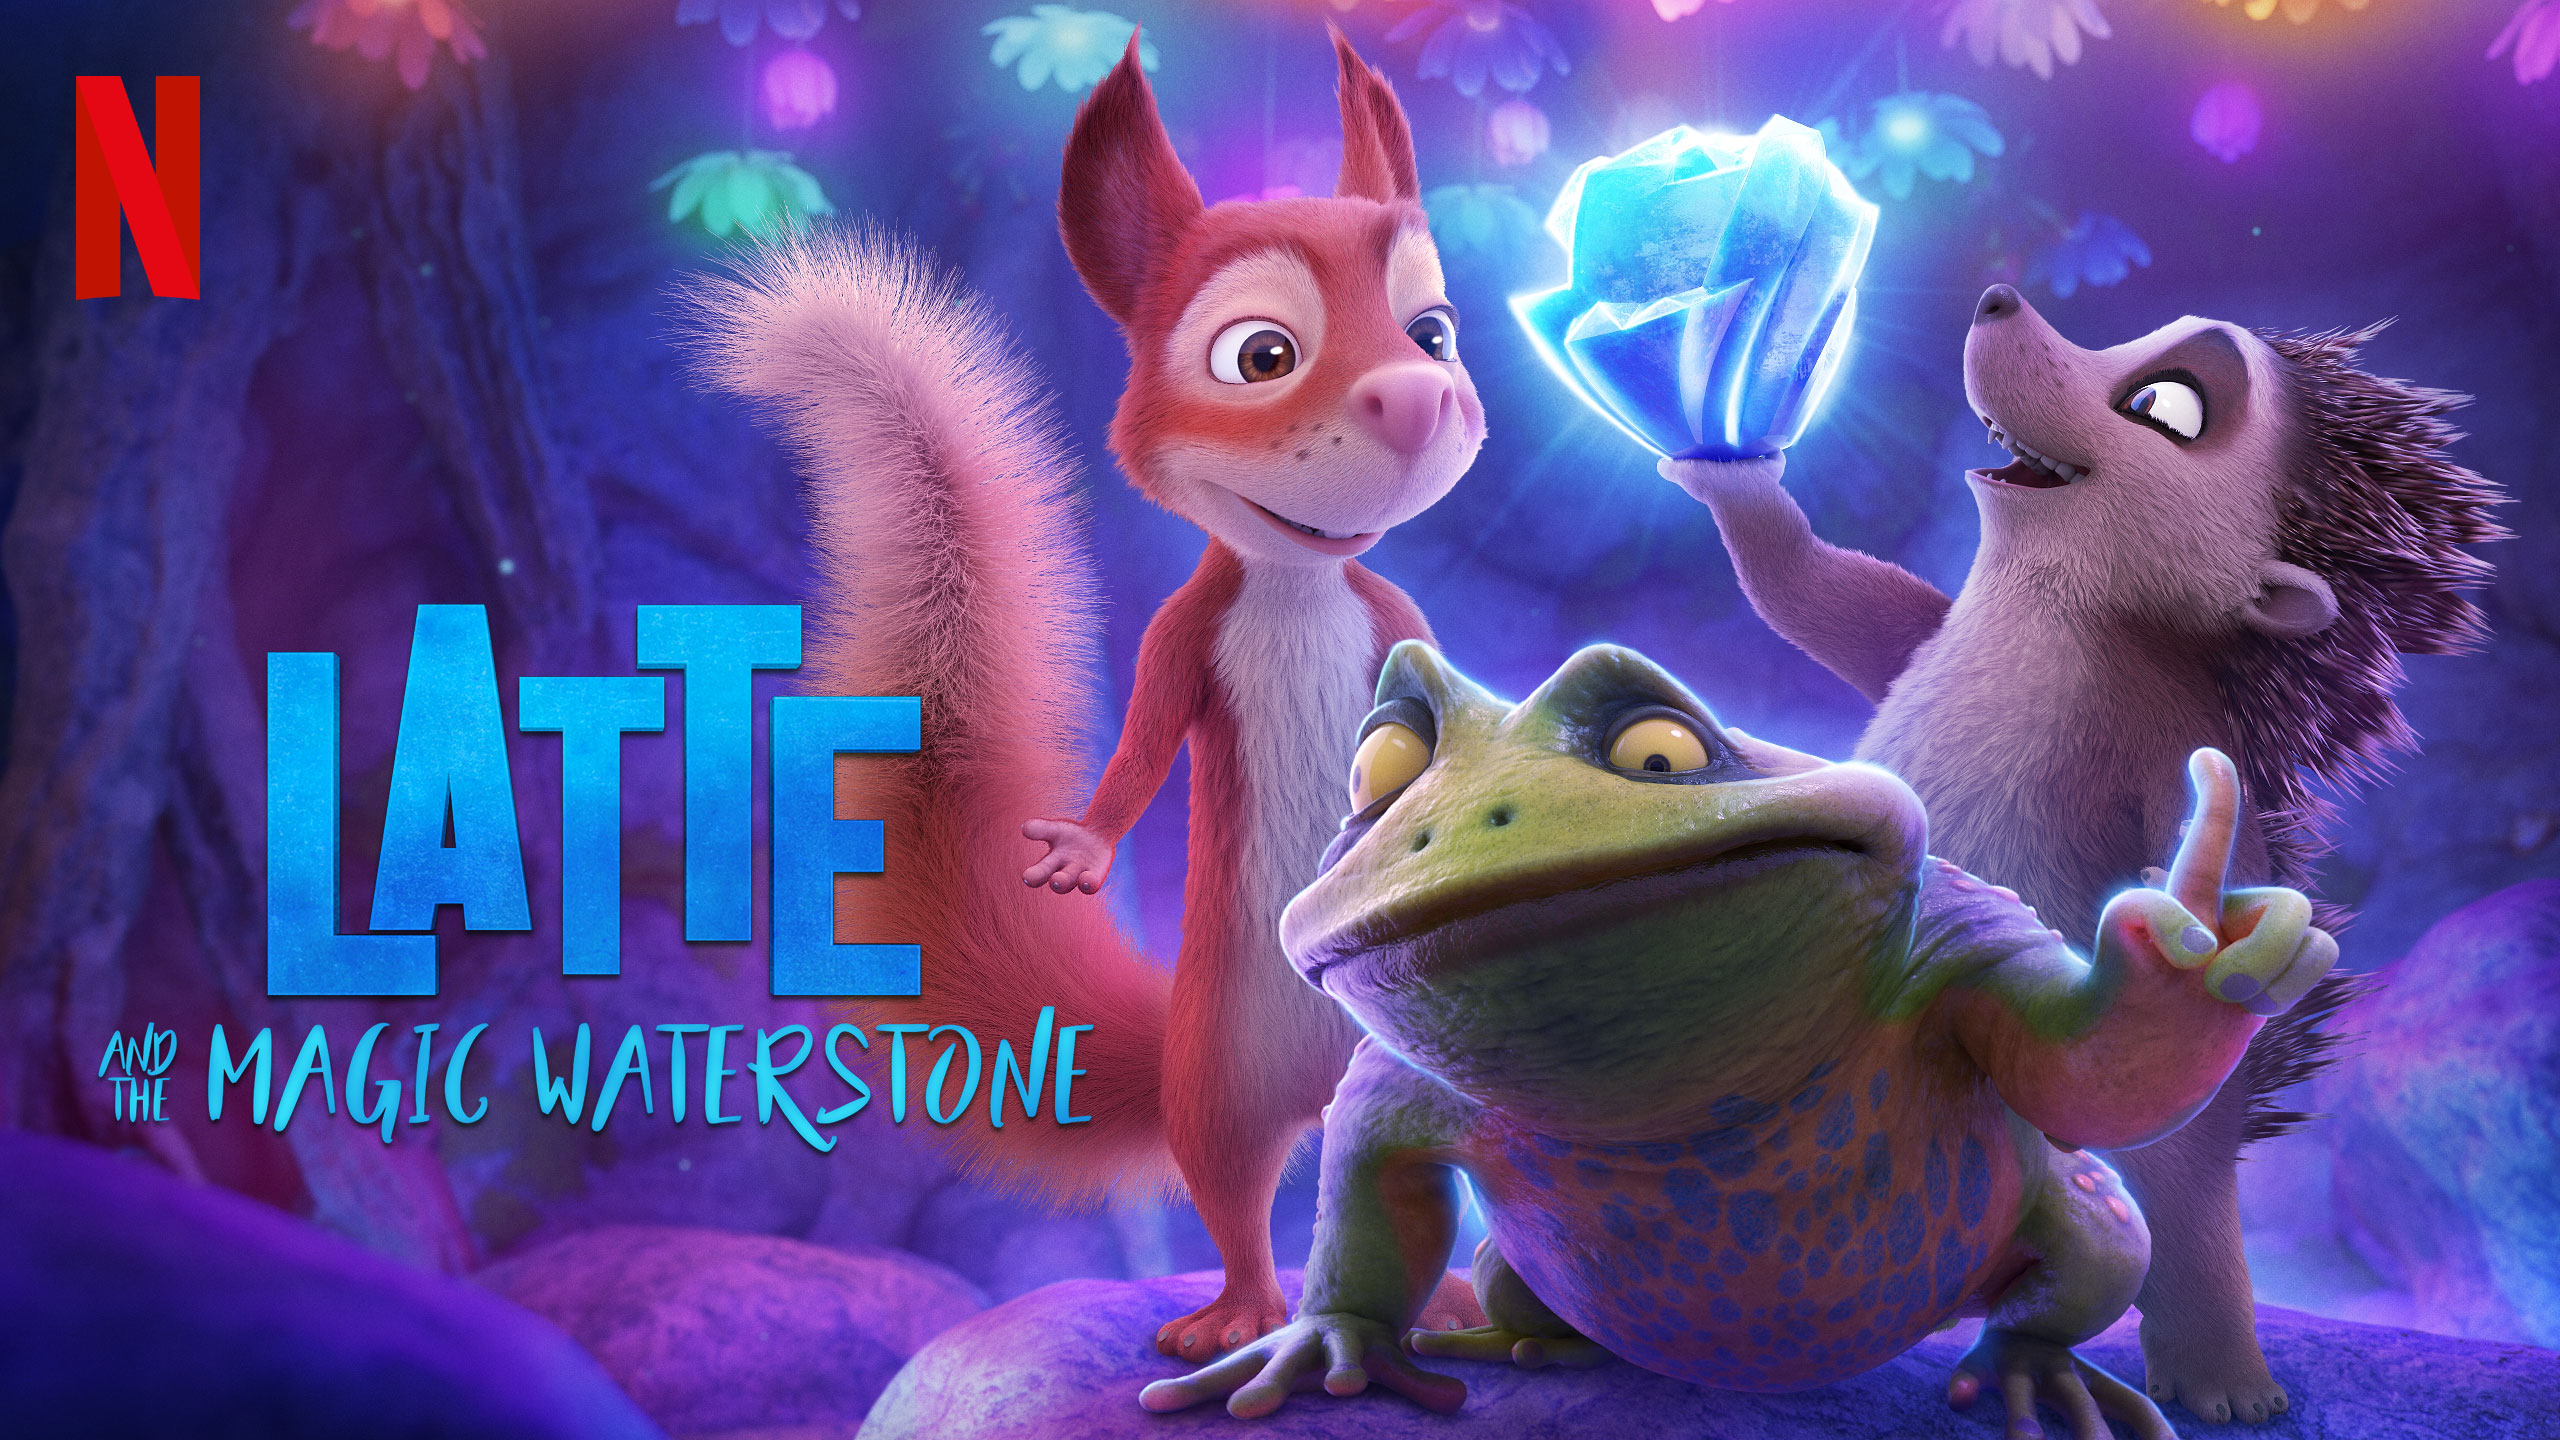 Latte and the Magic Waterstone | Netflix HDA Concept, Finishing & Illustration